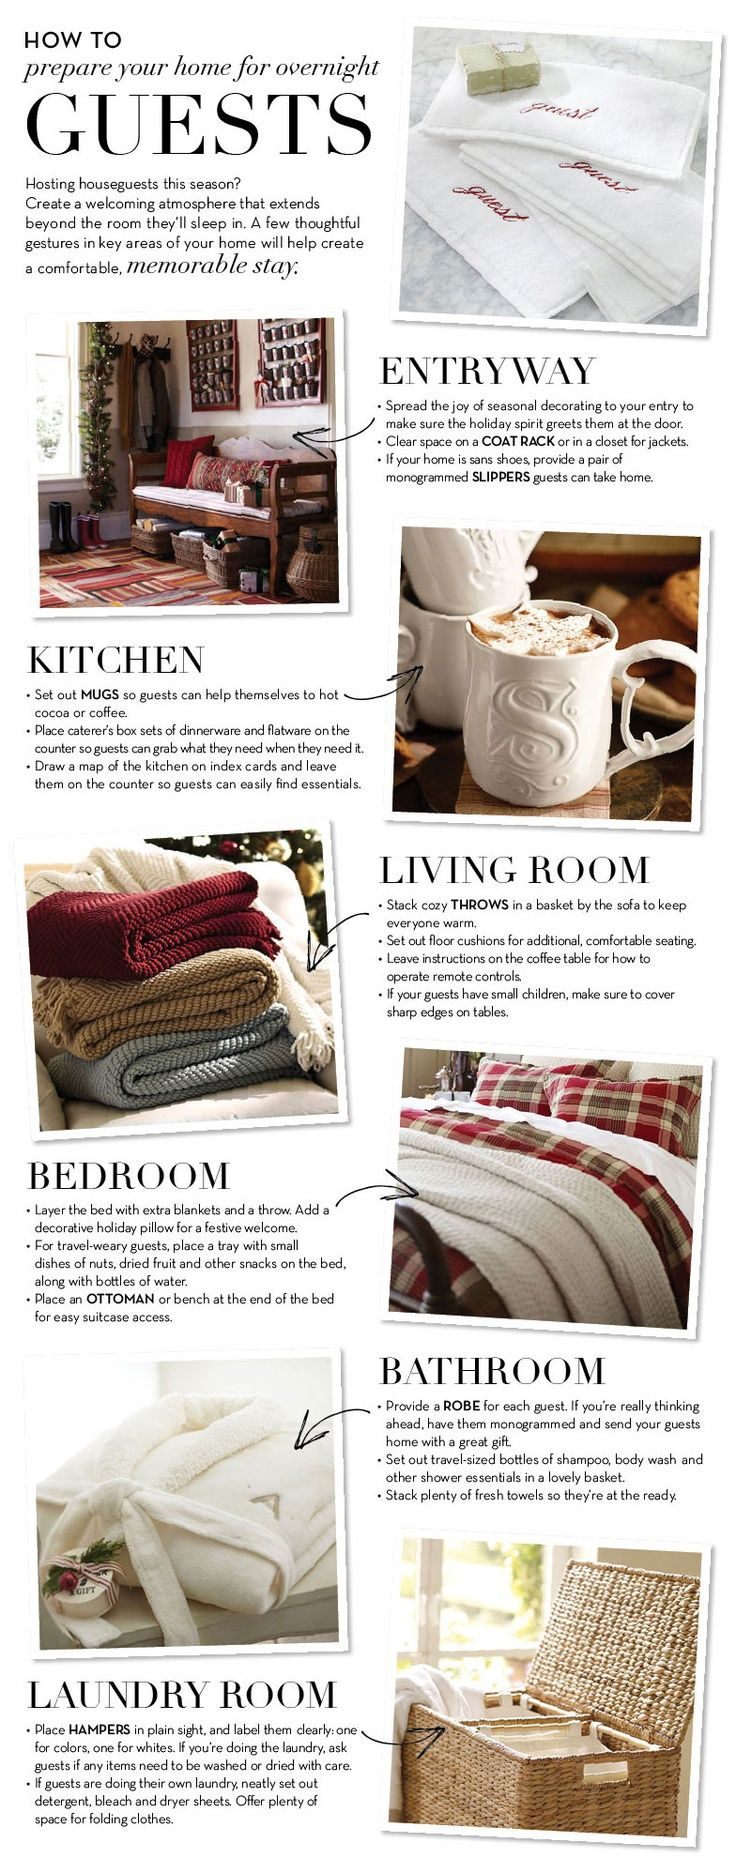 Preparing for overnight guests can be easy and stress free with these tips. Make each room welcoming and your guests will feel right at home.